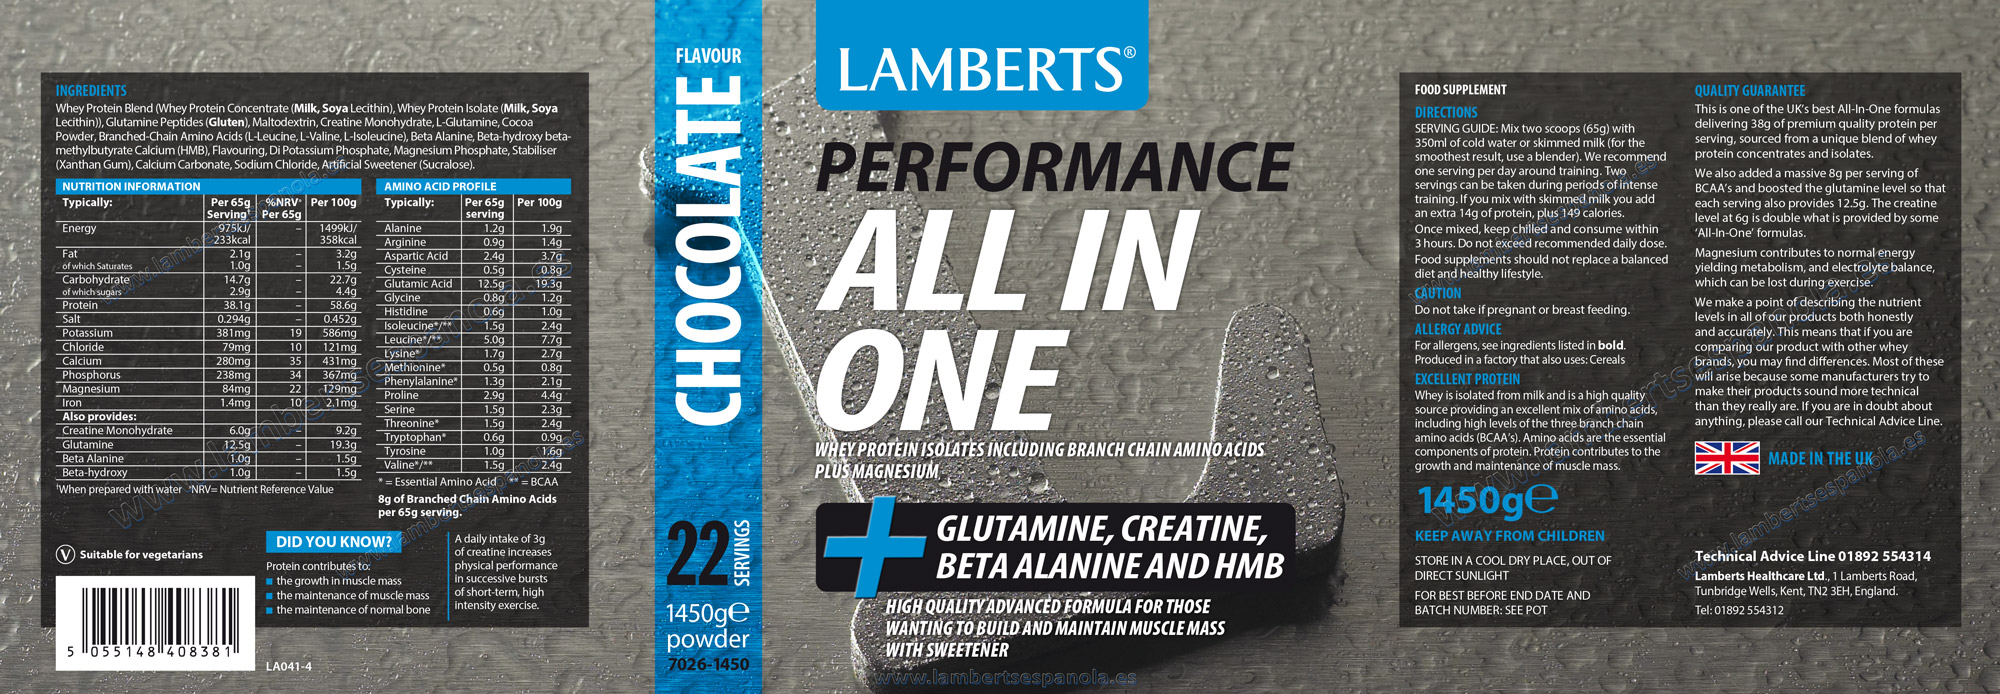 All in one chocolate flavour Lamberts properties